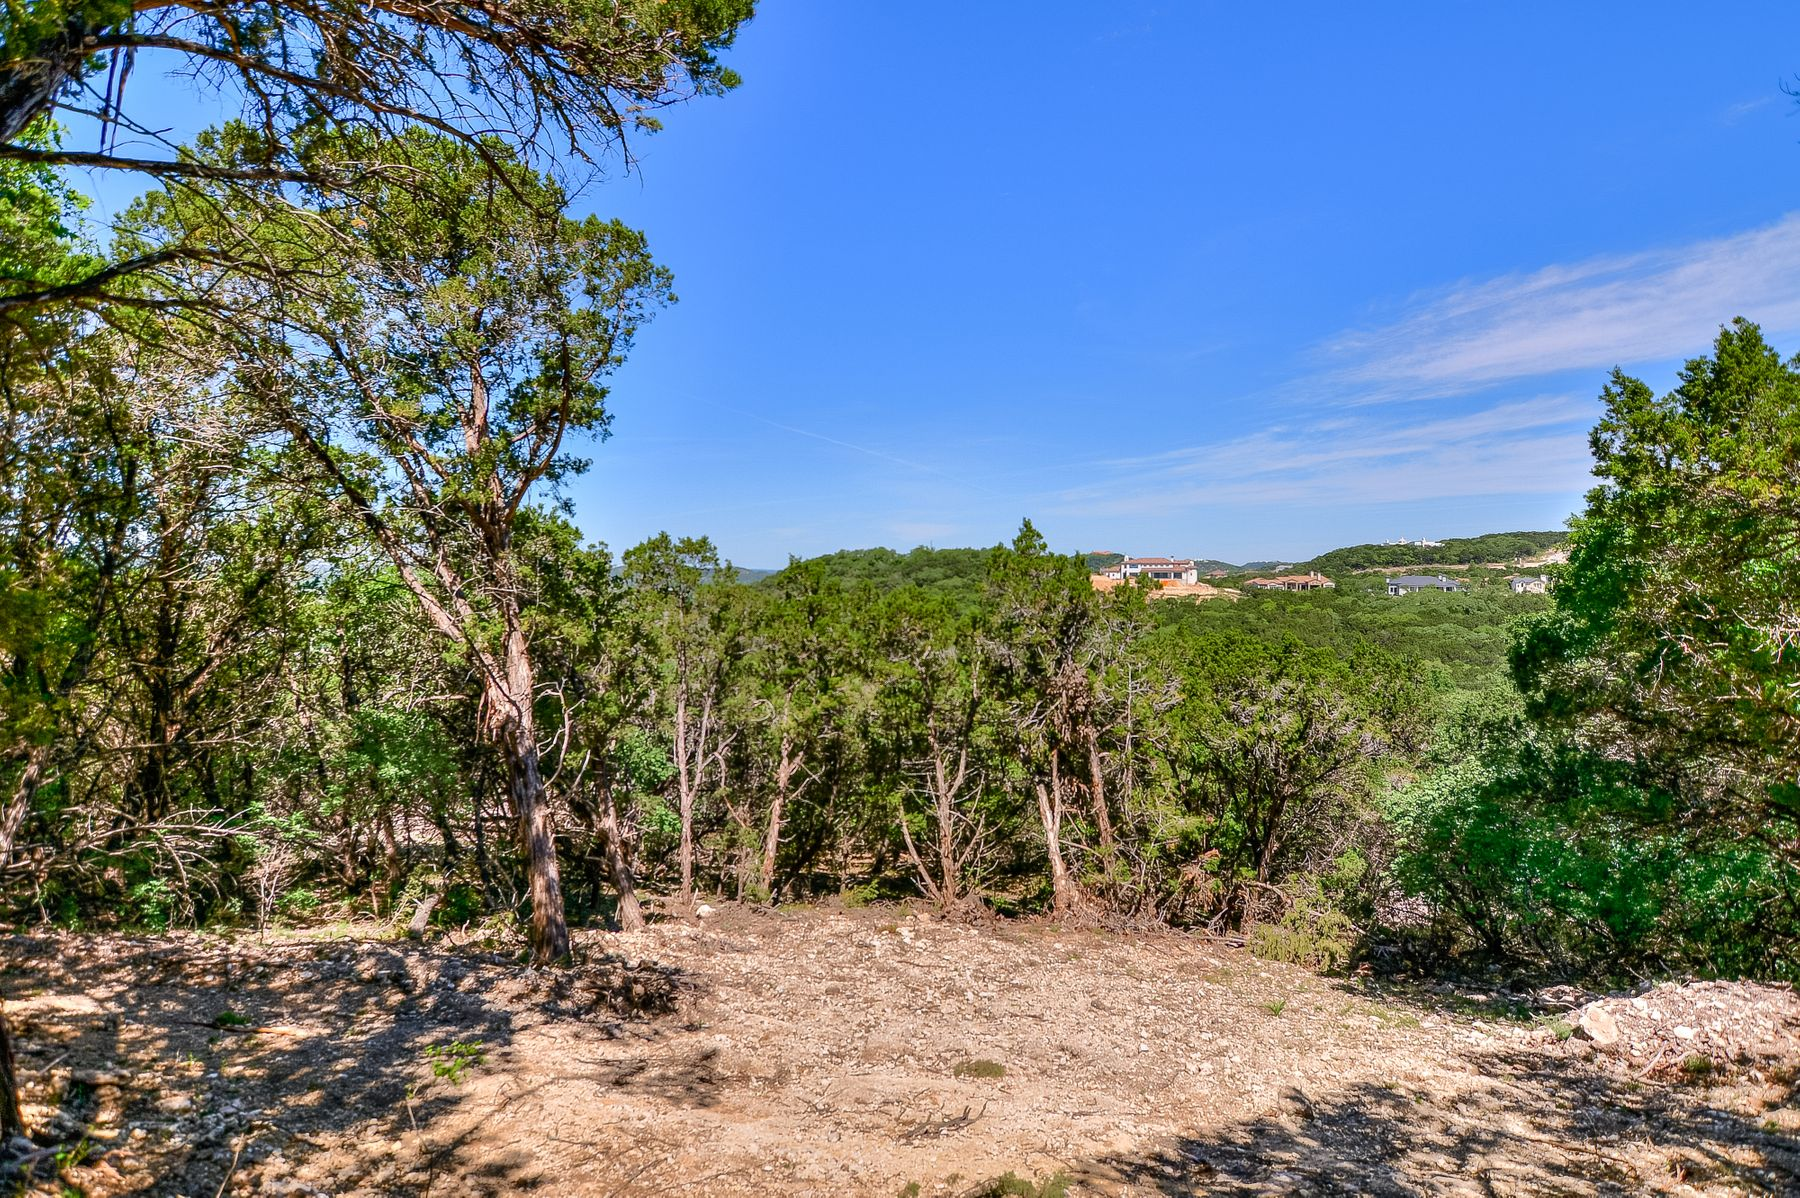 Land for Sale at 4.5+/- Acres With Hill Country Views 20847 Great Navajo, San Antonio, Texas 78257 United States